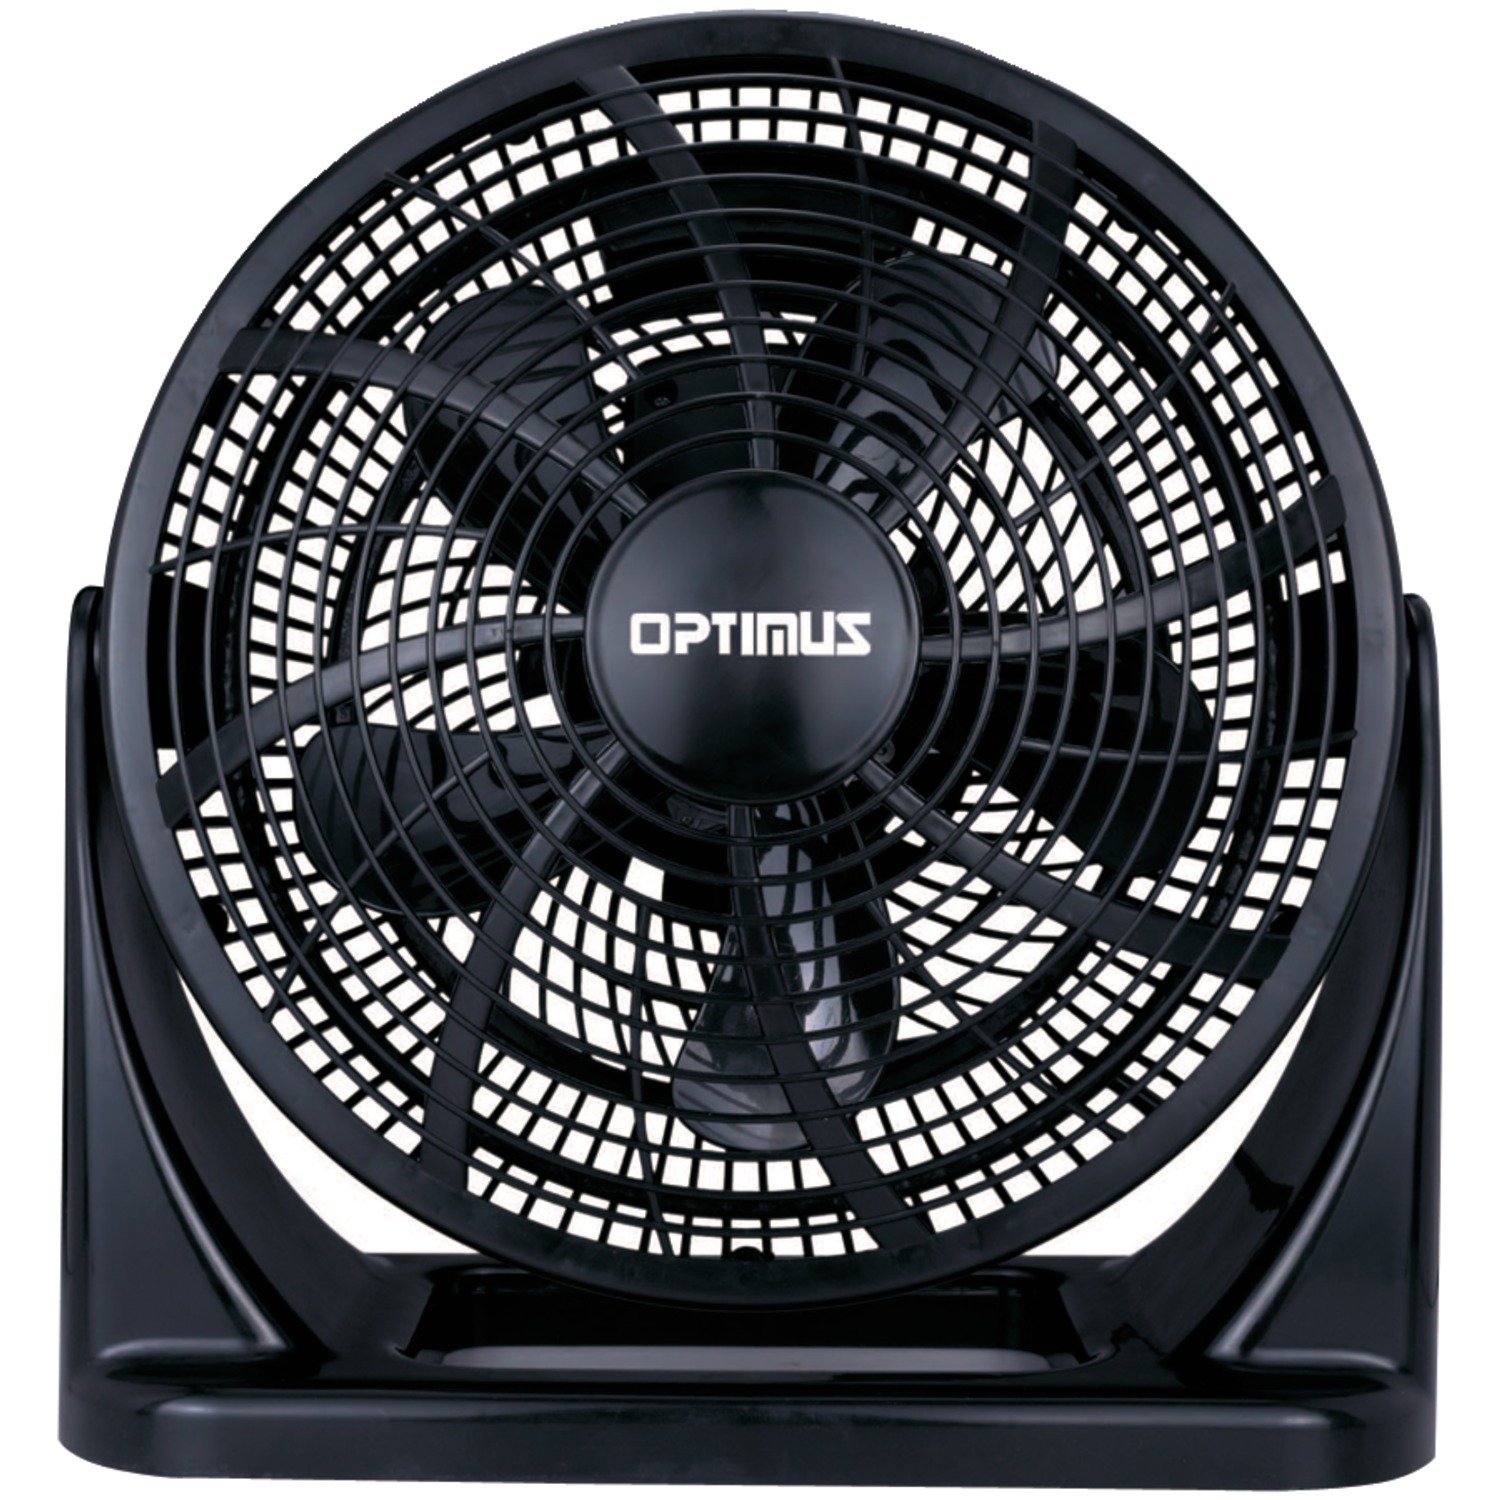 811LPJSLfdL._SL1500_ amazon com optimus f 7120 12 inch turbo high performance 3 speed  at bayanpartner.co